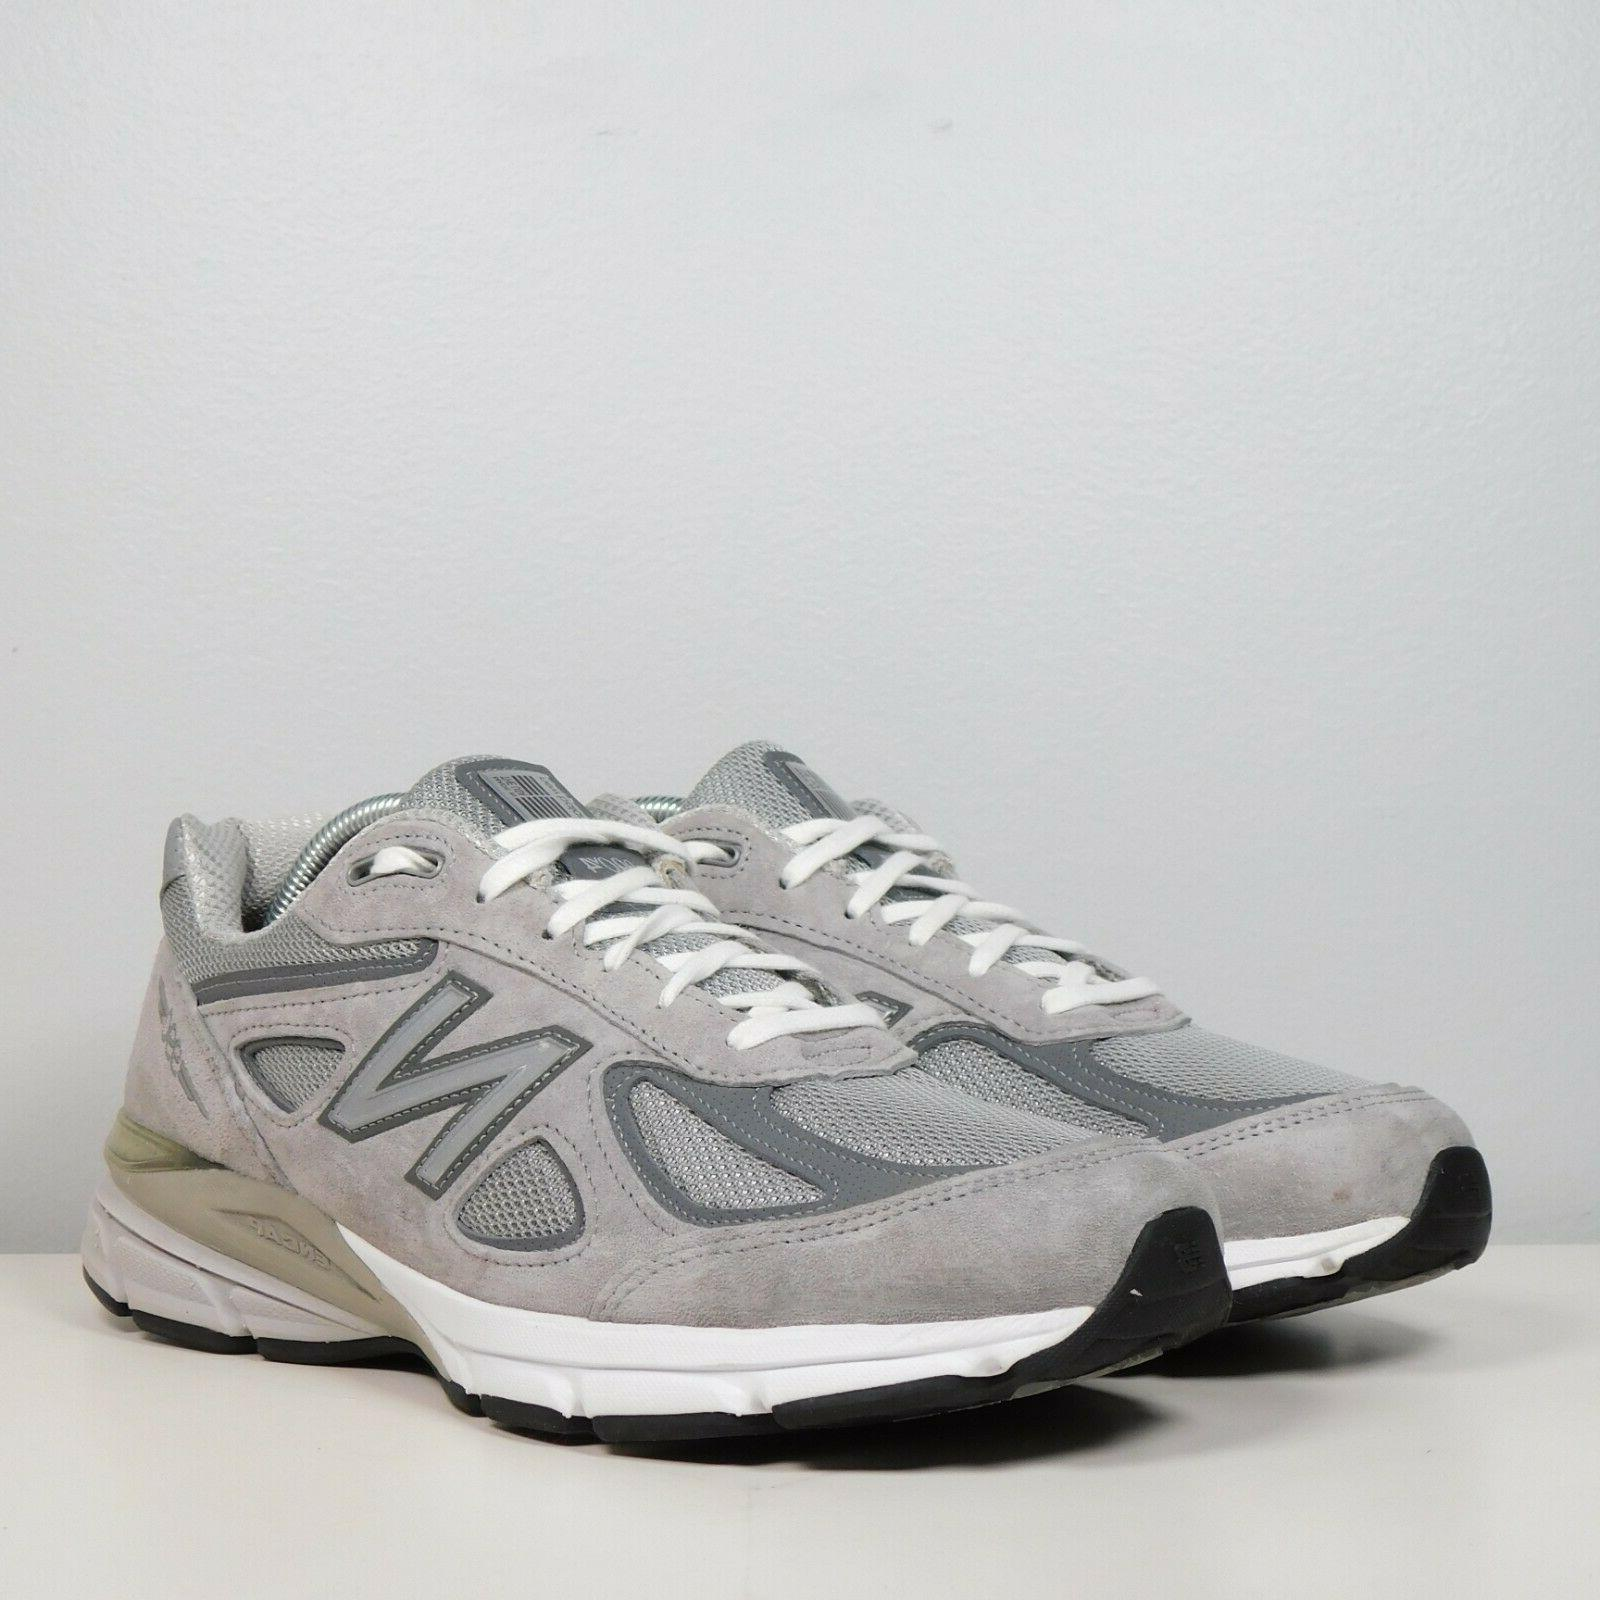 New 990v4 Sneakers M990GL4 Size 9.5